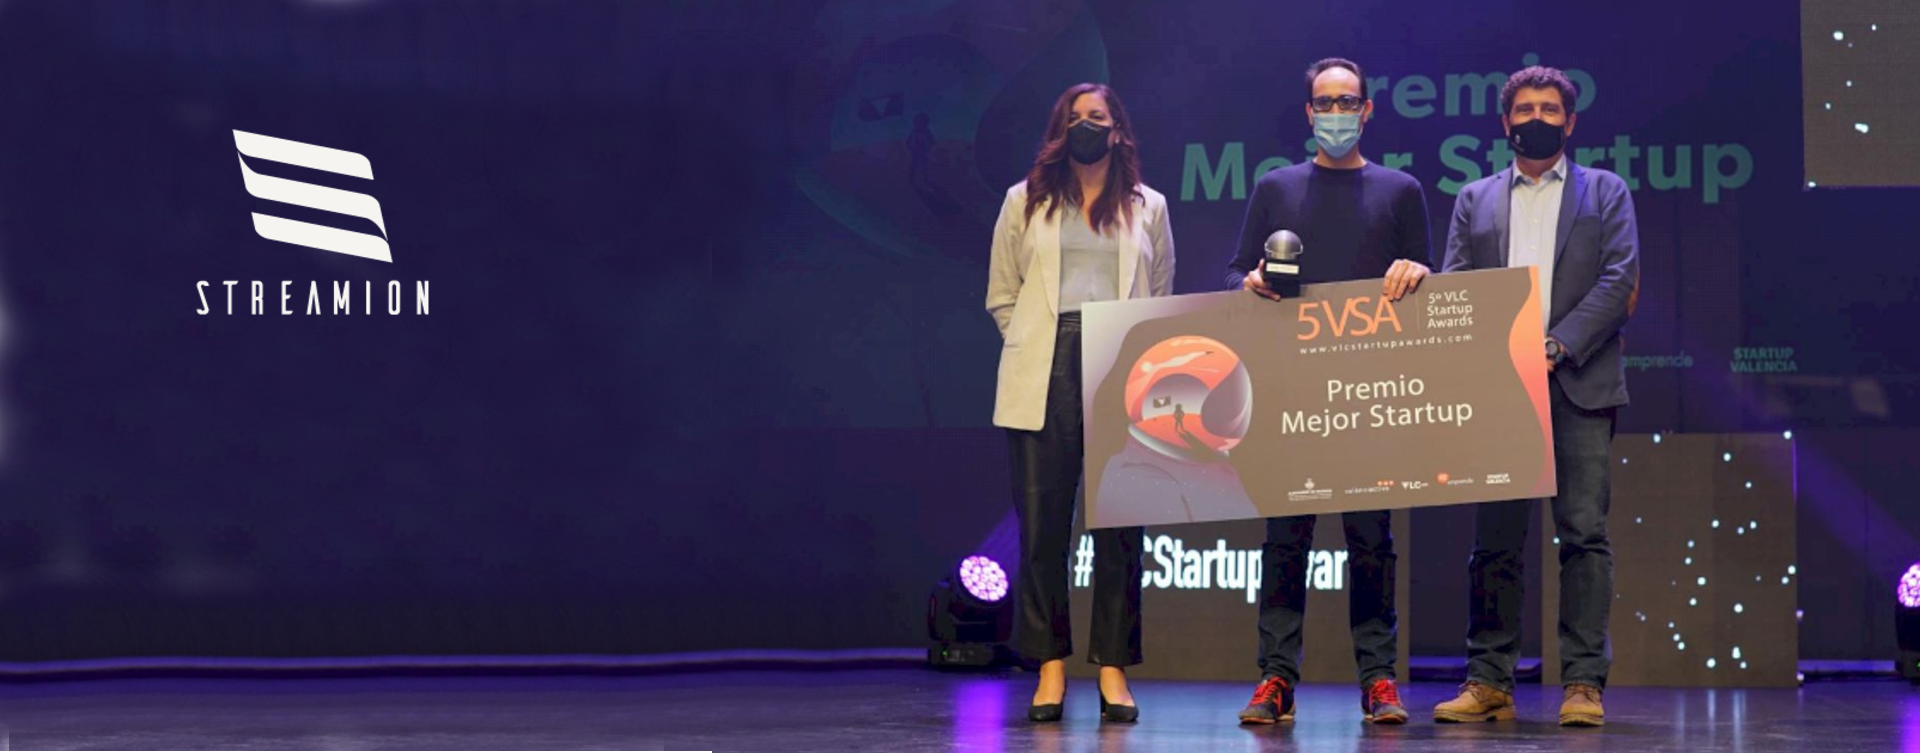 STREAMION – Best Valencia Startup for 2020